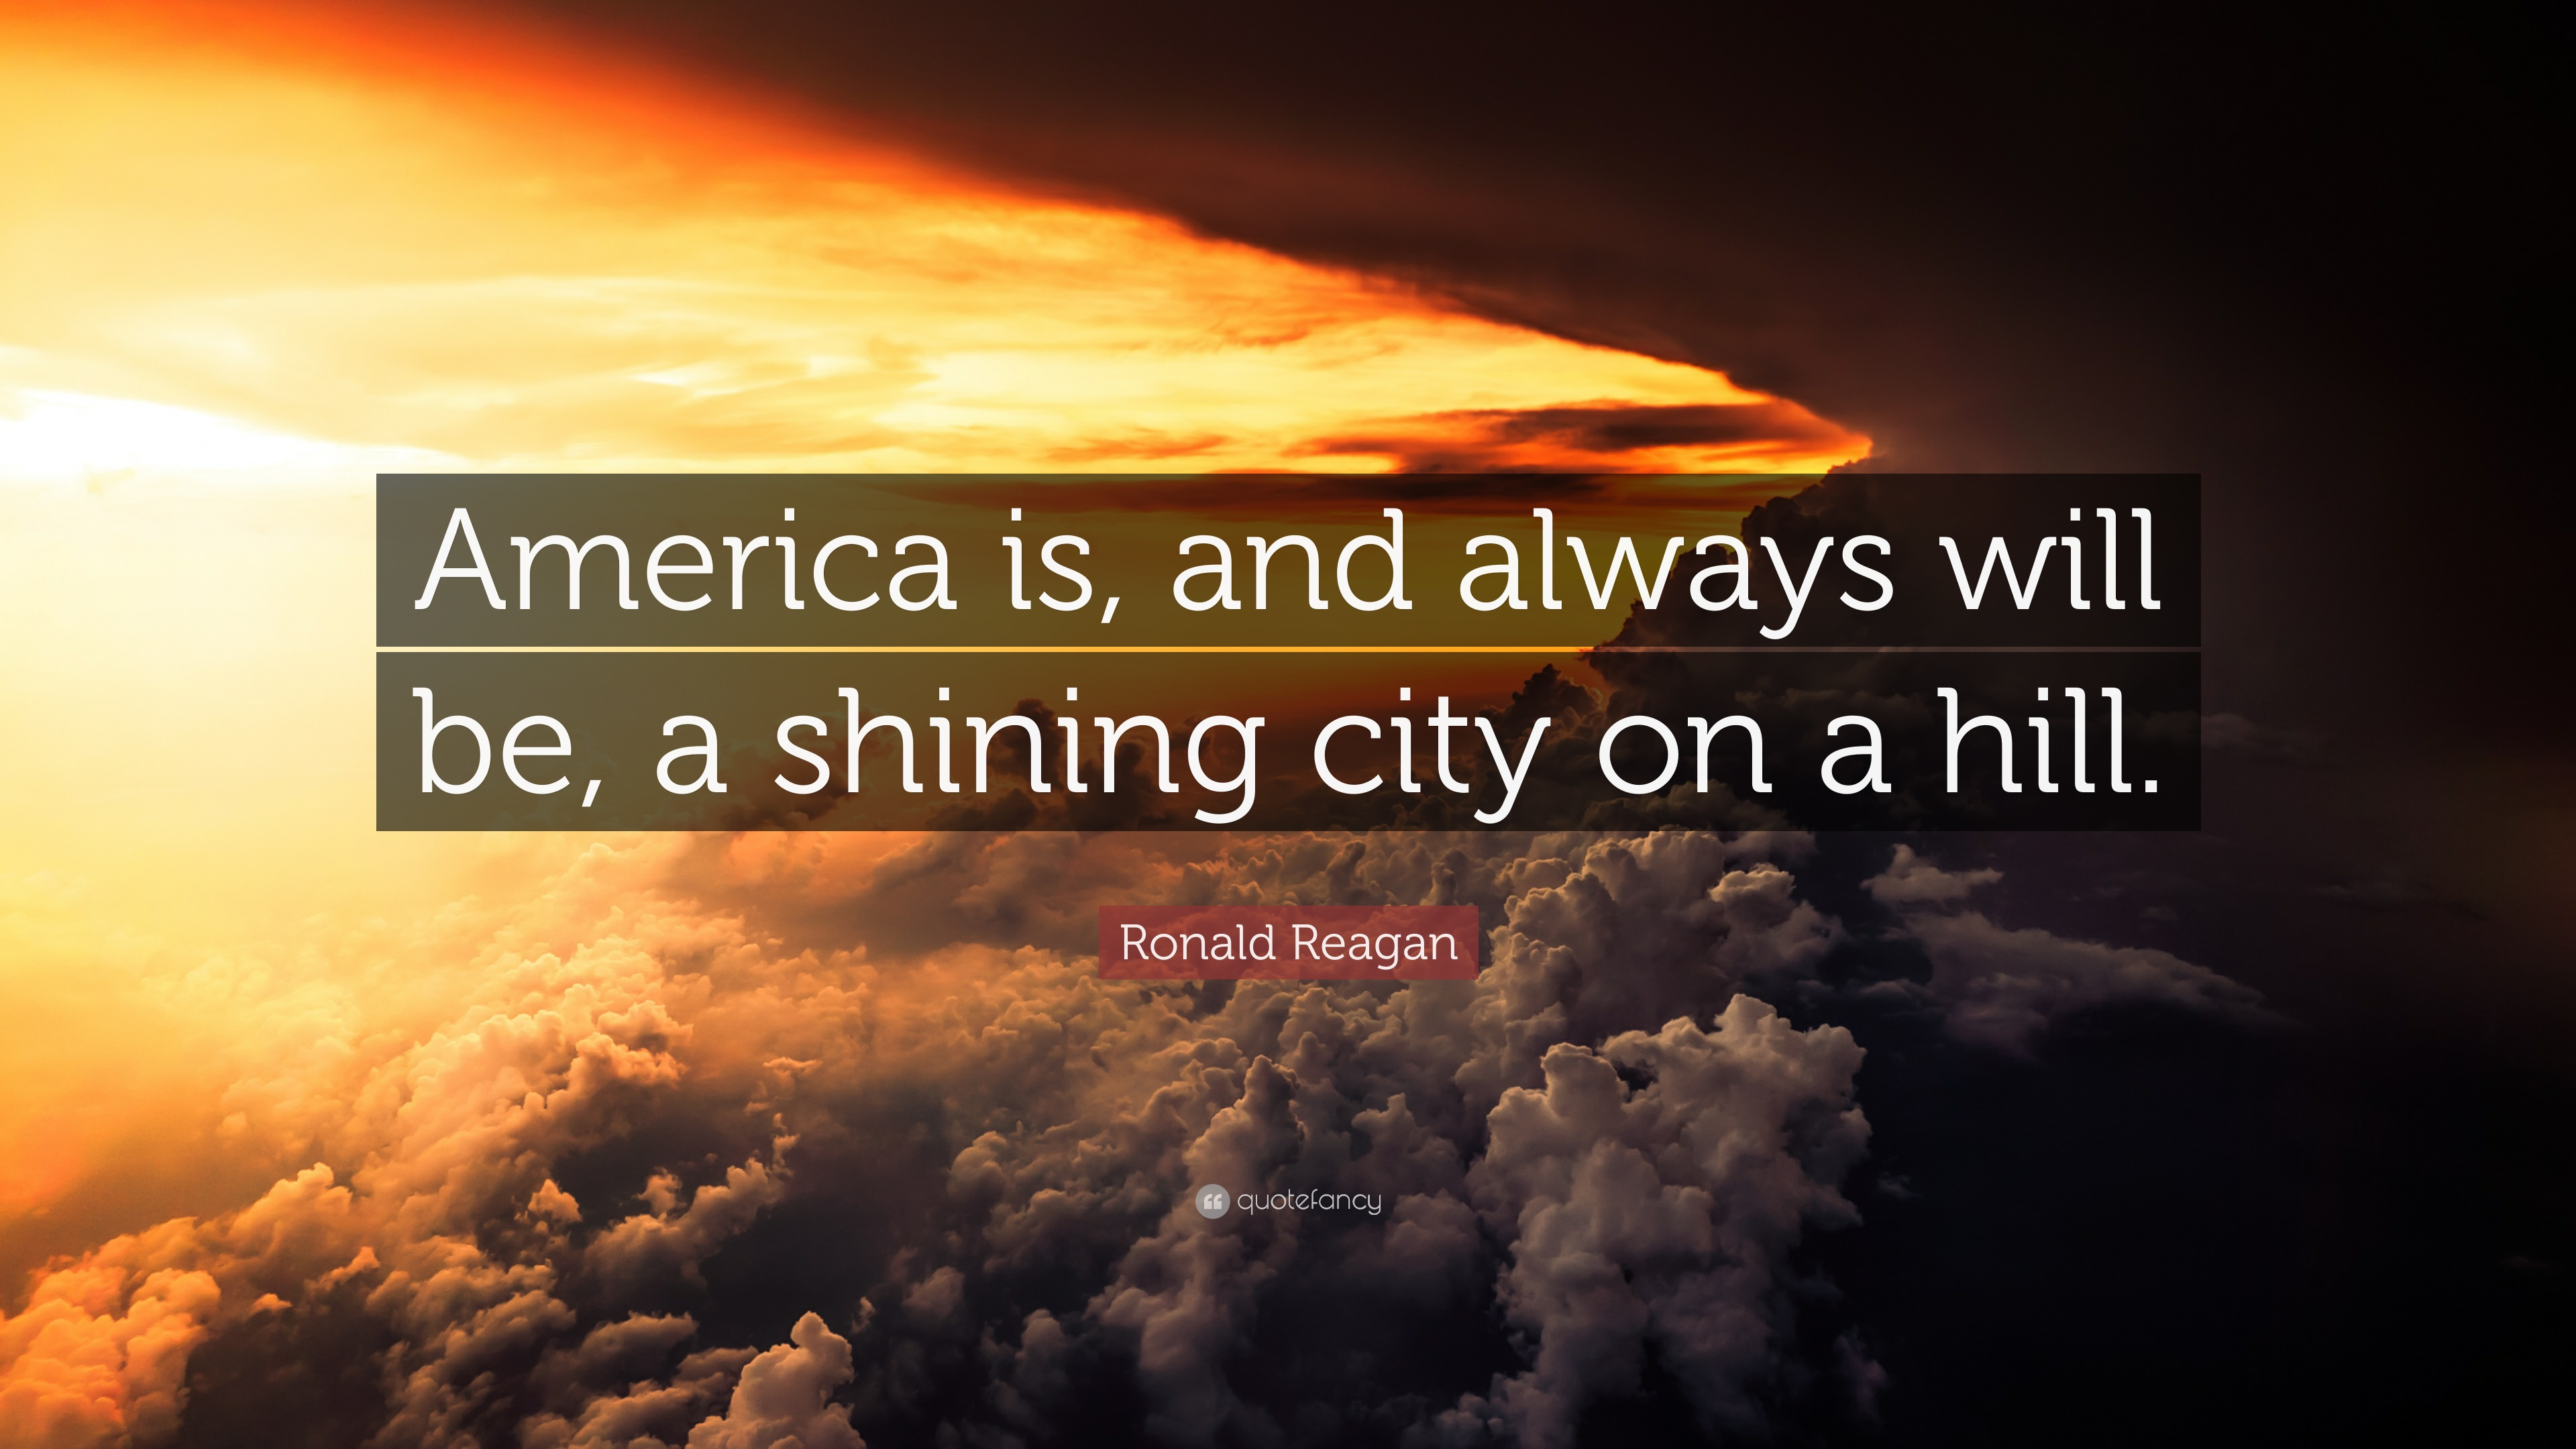 ronald reagan quote �america is and always will be a